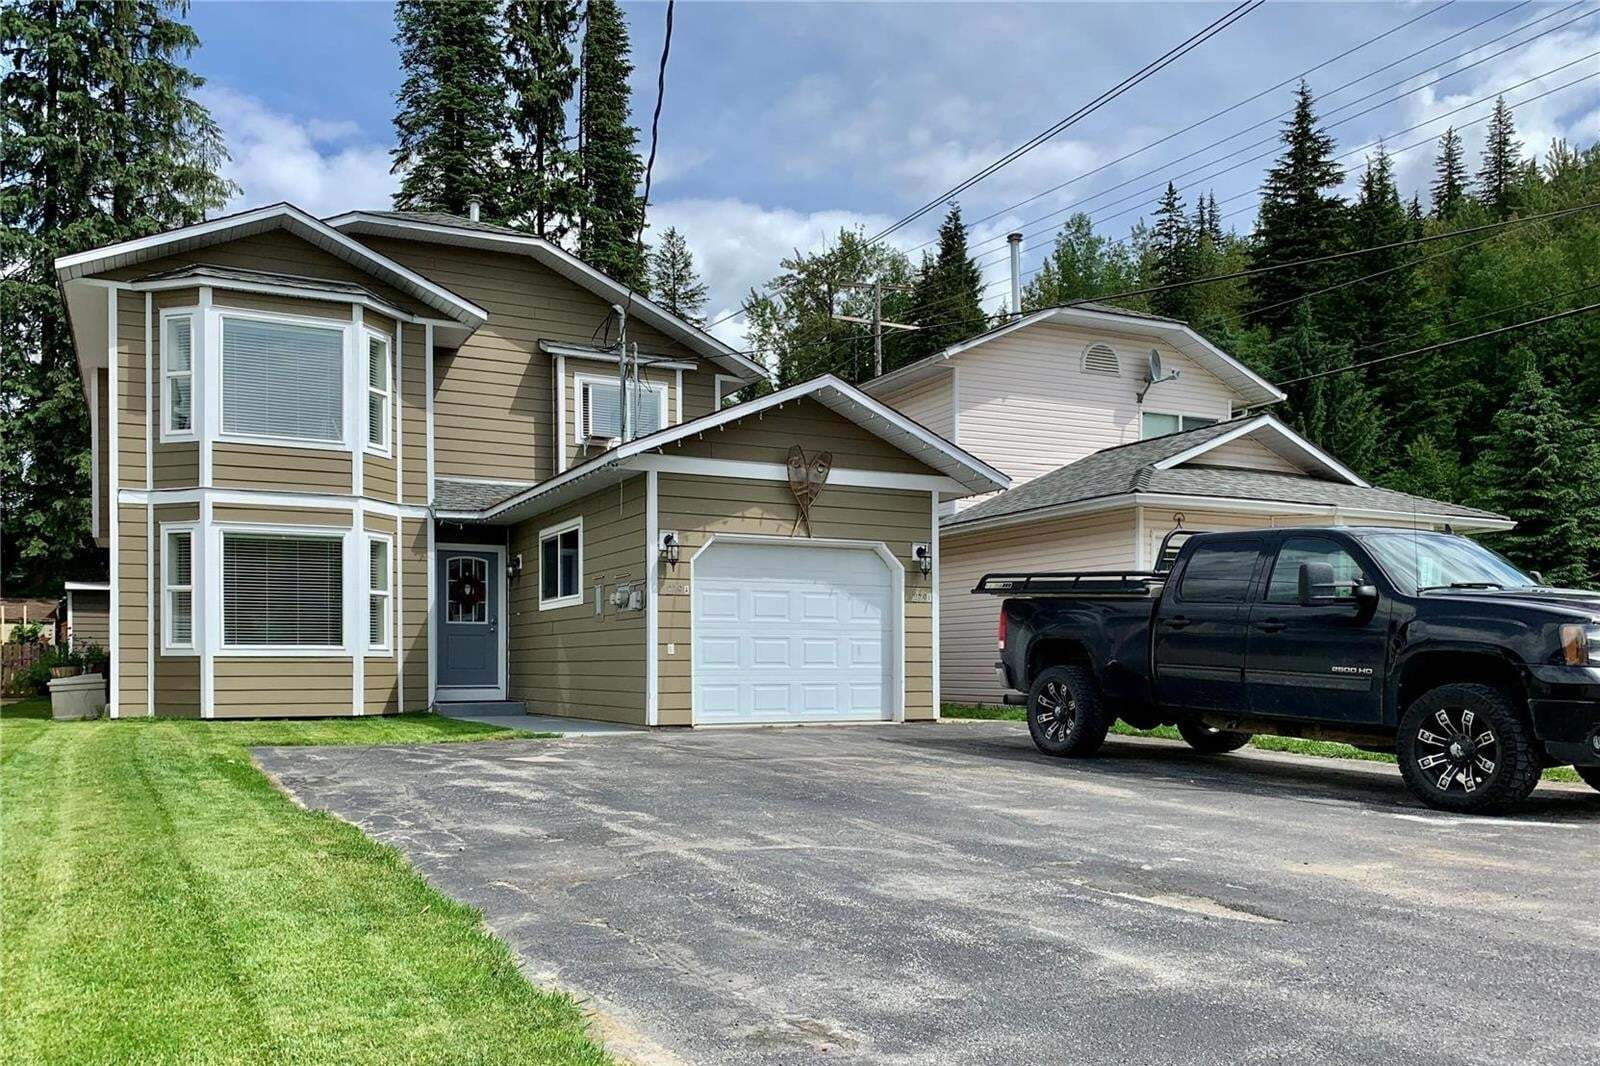 Townhouse for sale at 279 Viers Cres Revelstoke British Columbia - MLS: 10207974